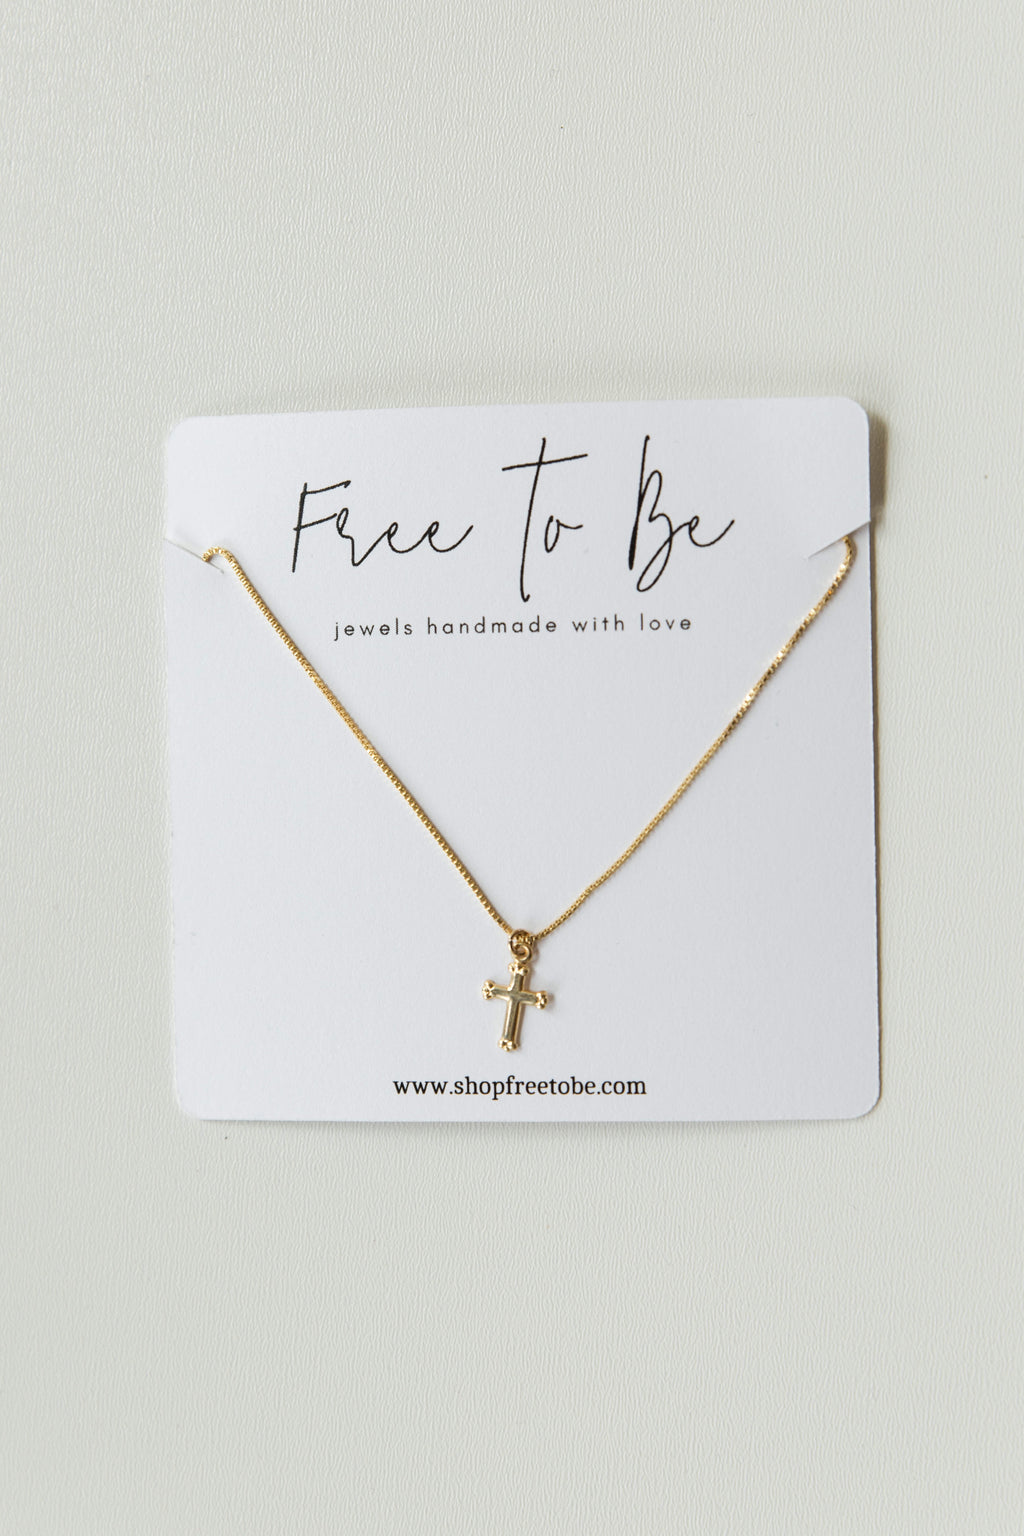 mode, 14k gold-filled dainty cross necklace